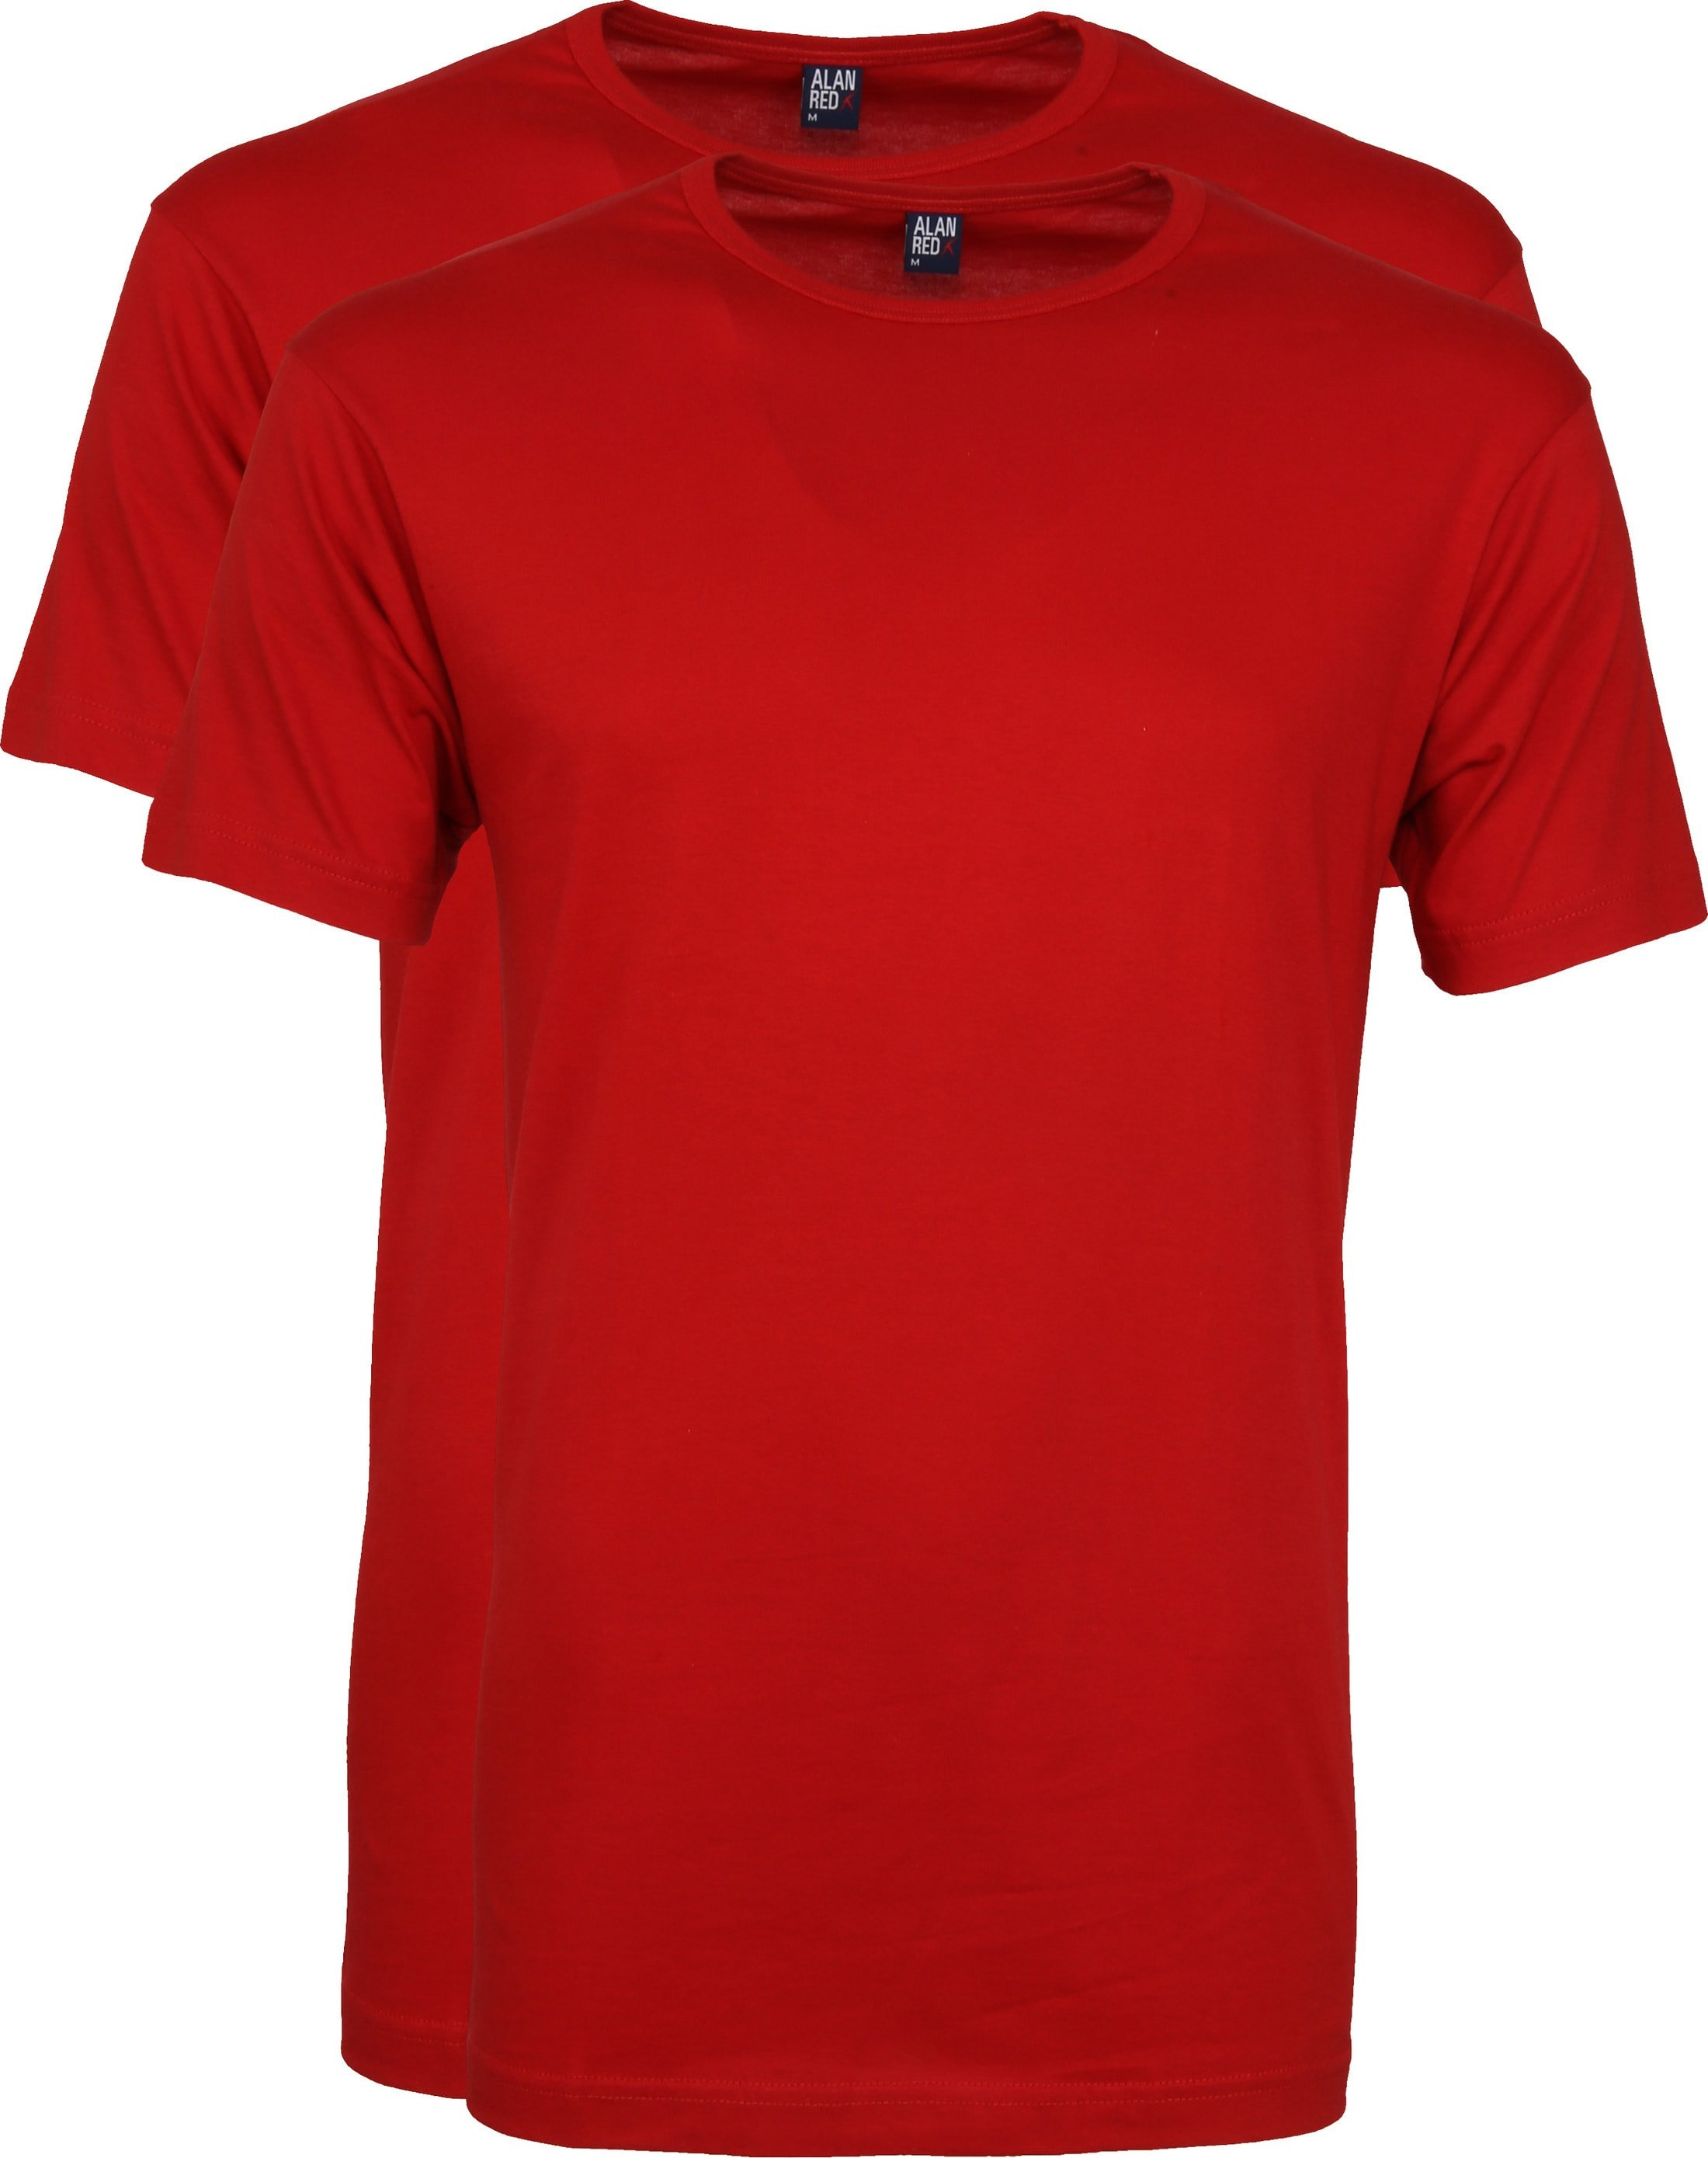 Alan Red Derby R-Neck T-Shirt Stone Red (2Pack) foto 0